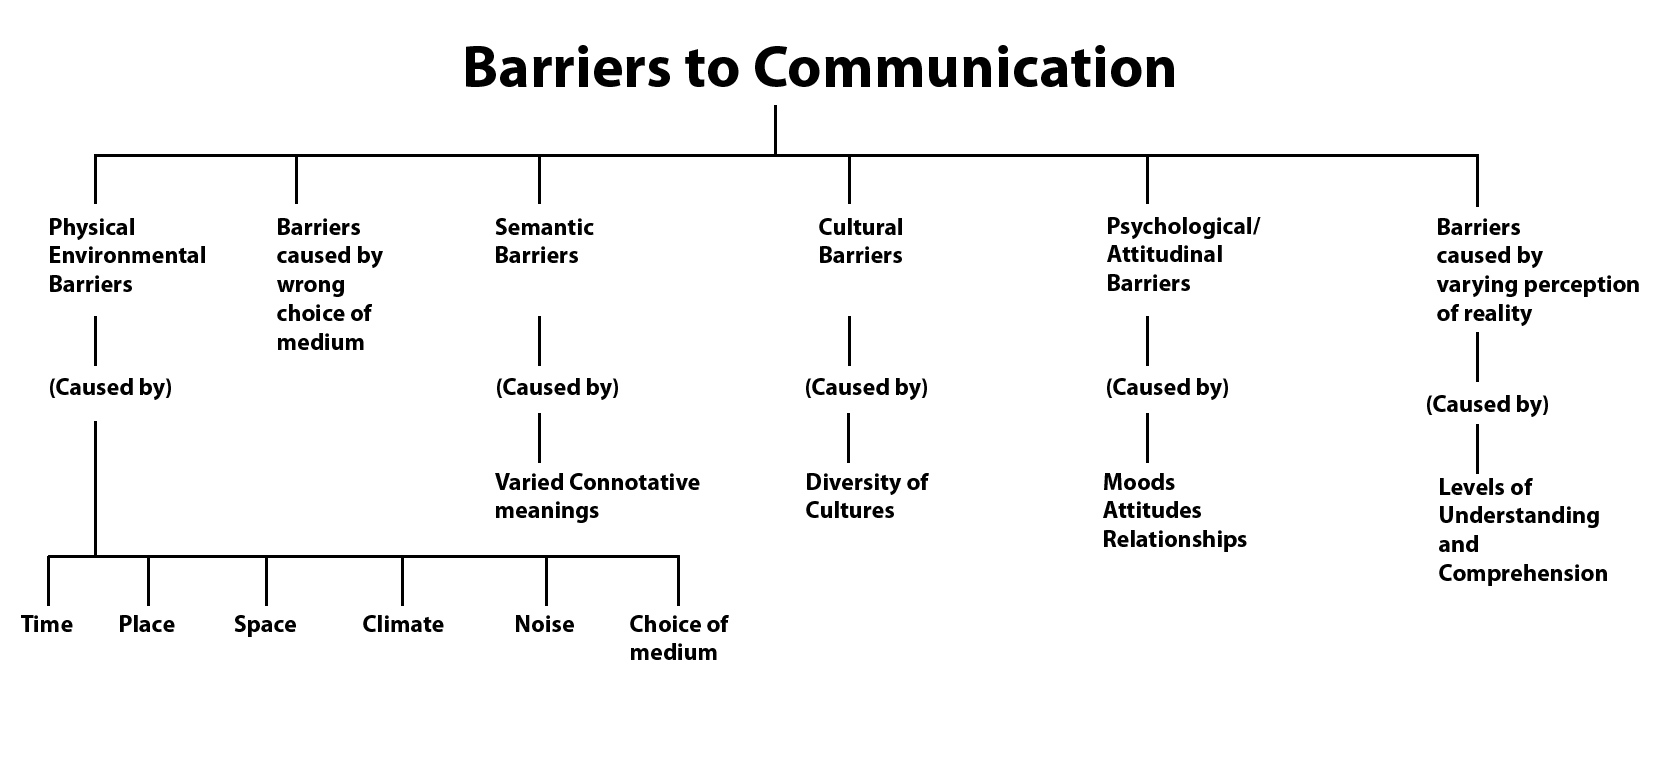 what are the different barriers of communication